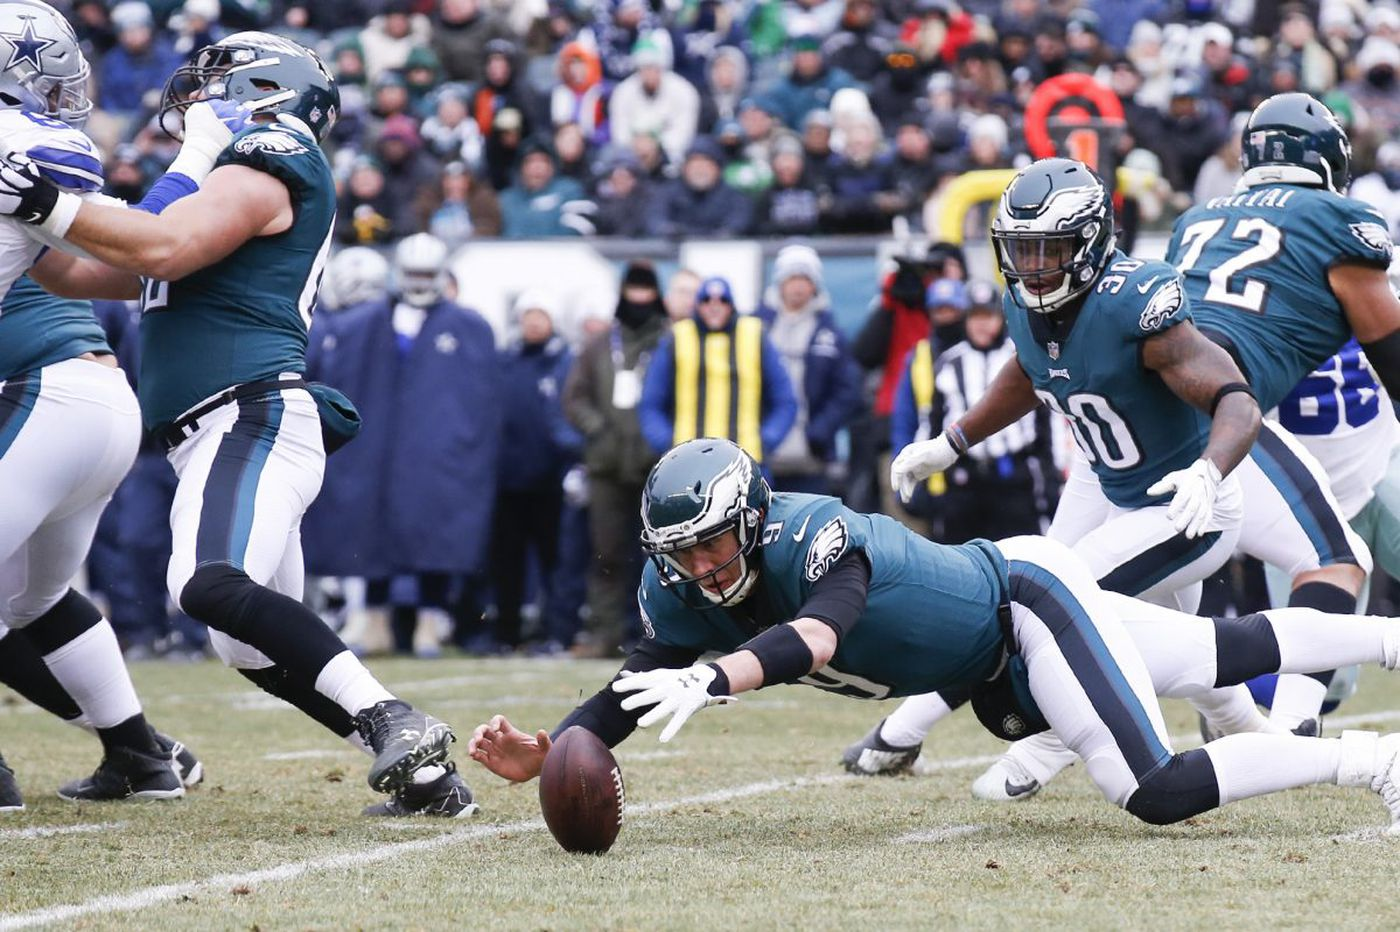 Nick Foles says he's still confident, despite another bad outing | Bob Ford